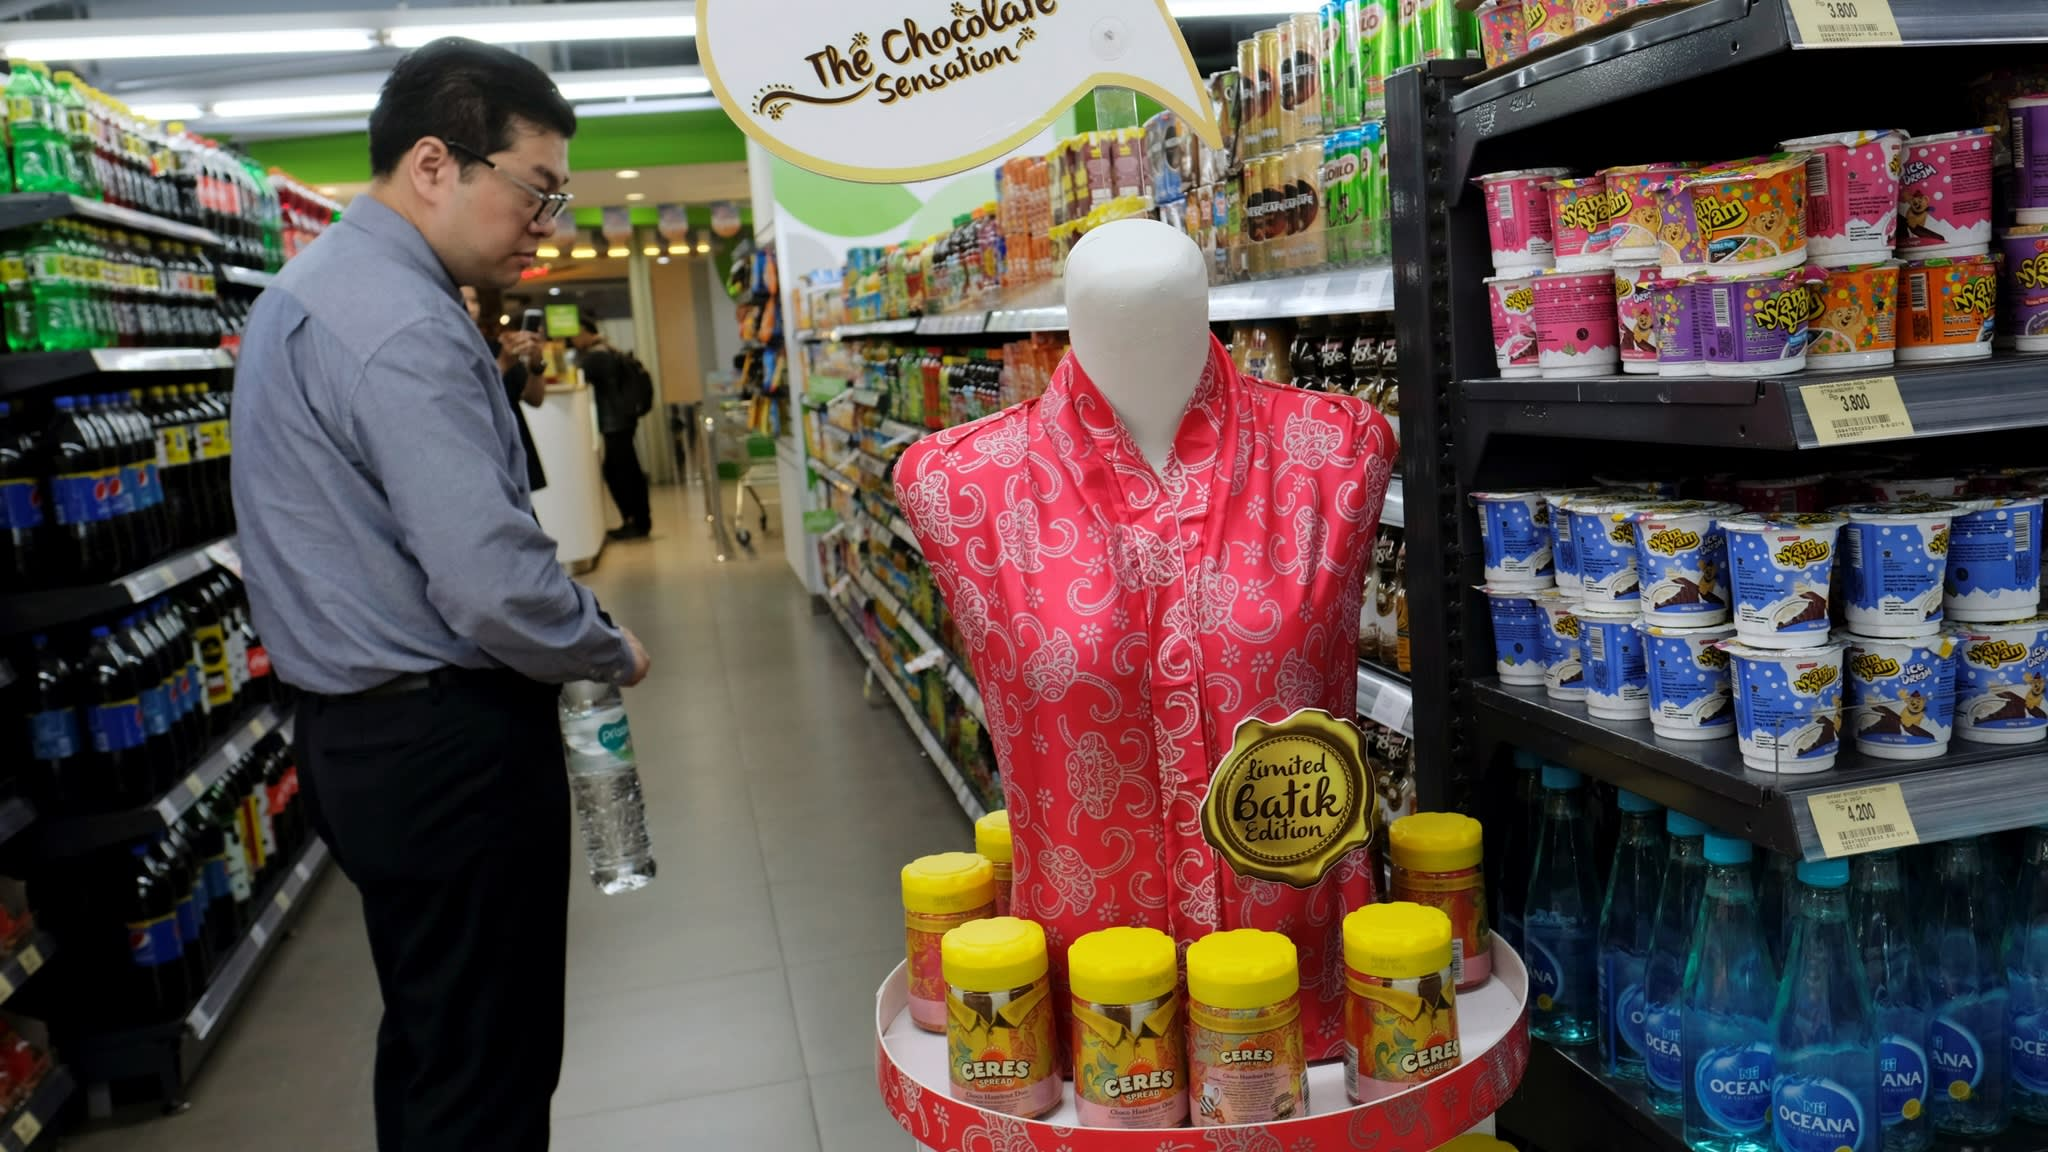 Indonesia aims to raise import tariffs on 900 consumer items